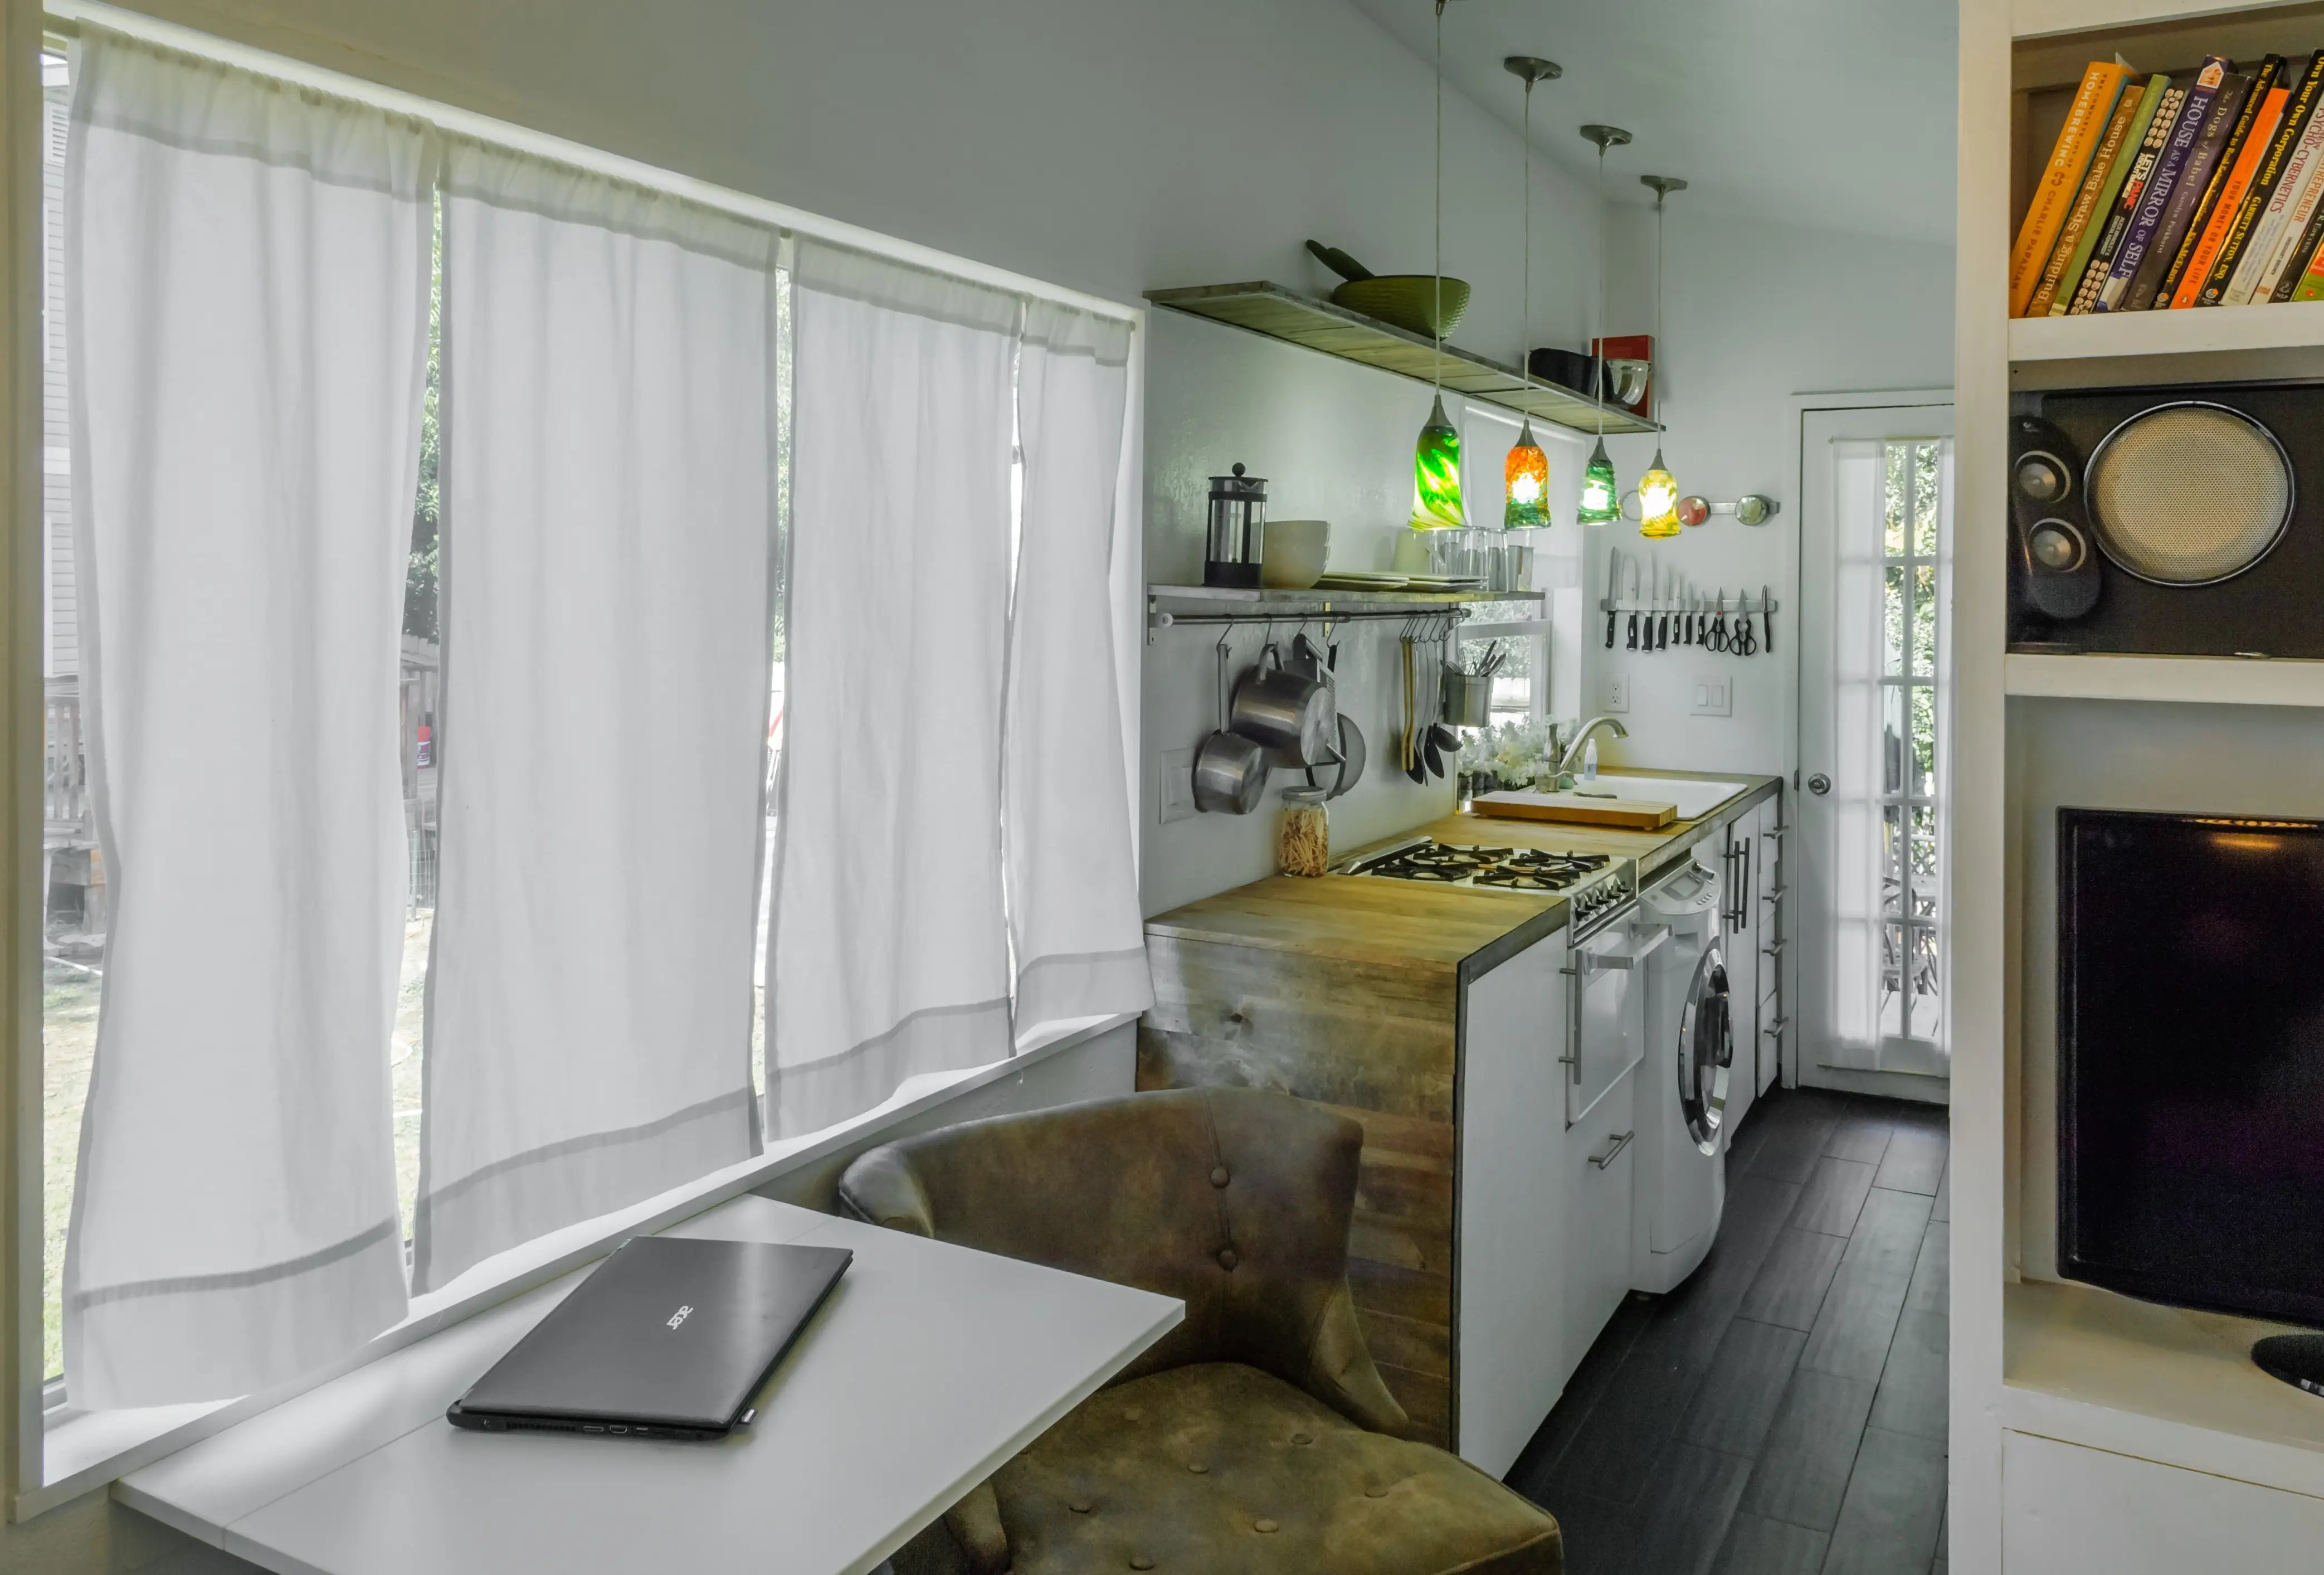 Underneath the kitchen counters, she has a two-in-one washer/dryer.